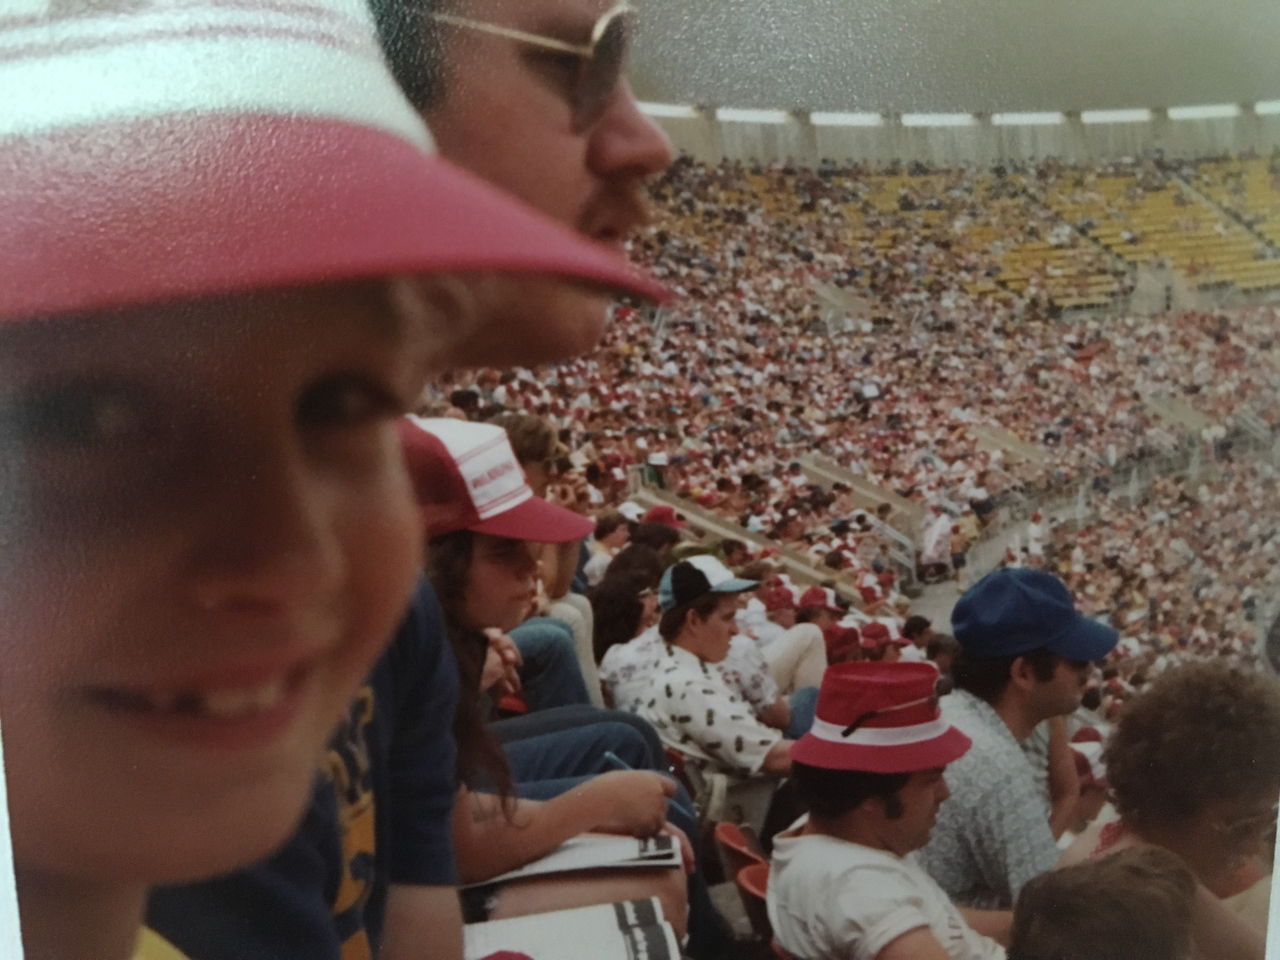 Me and my father at a Phillies game, circa 1976.